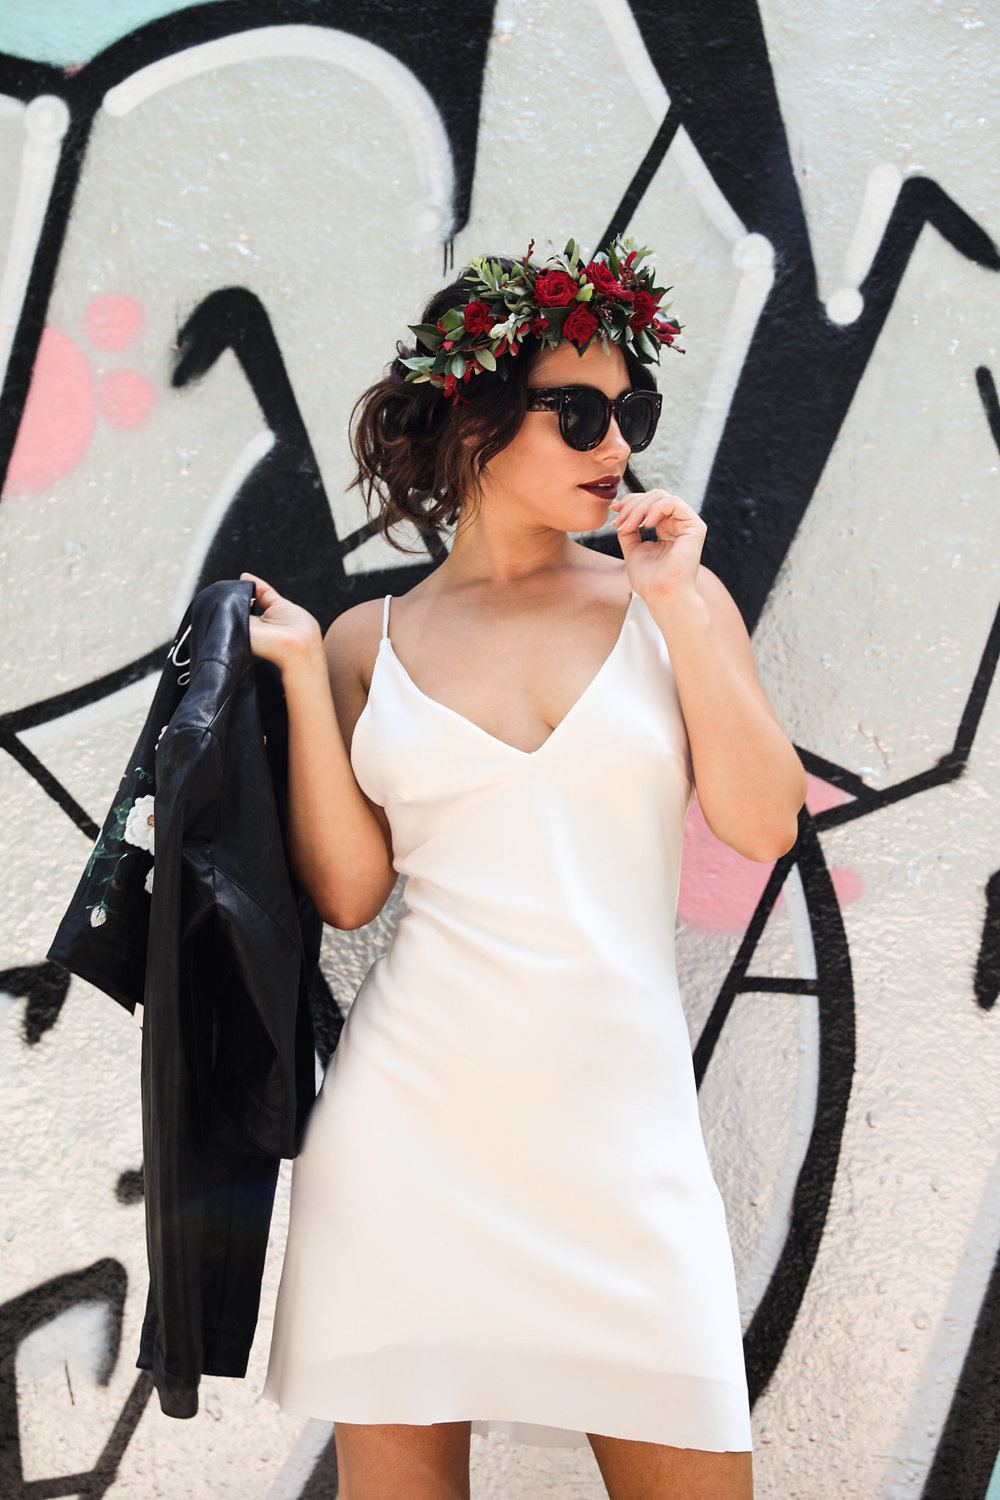 Ginger & Gold Bridal featured on LOVE FIND CO. Dress Concierge